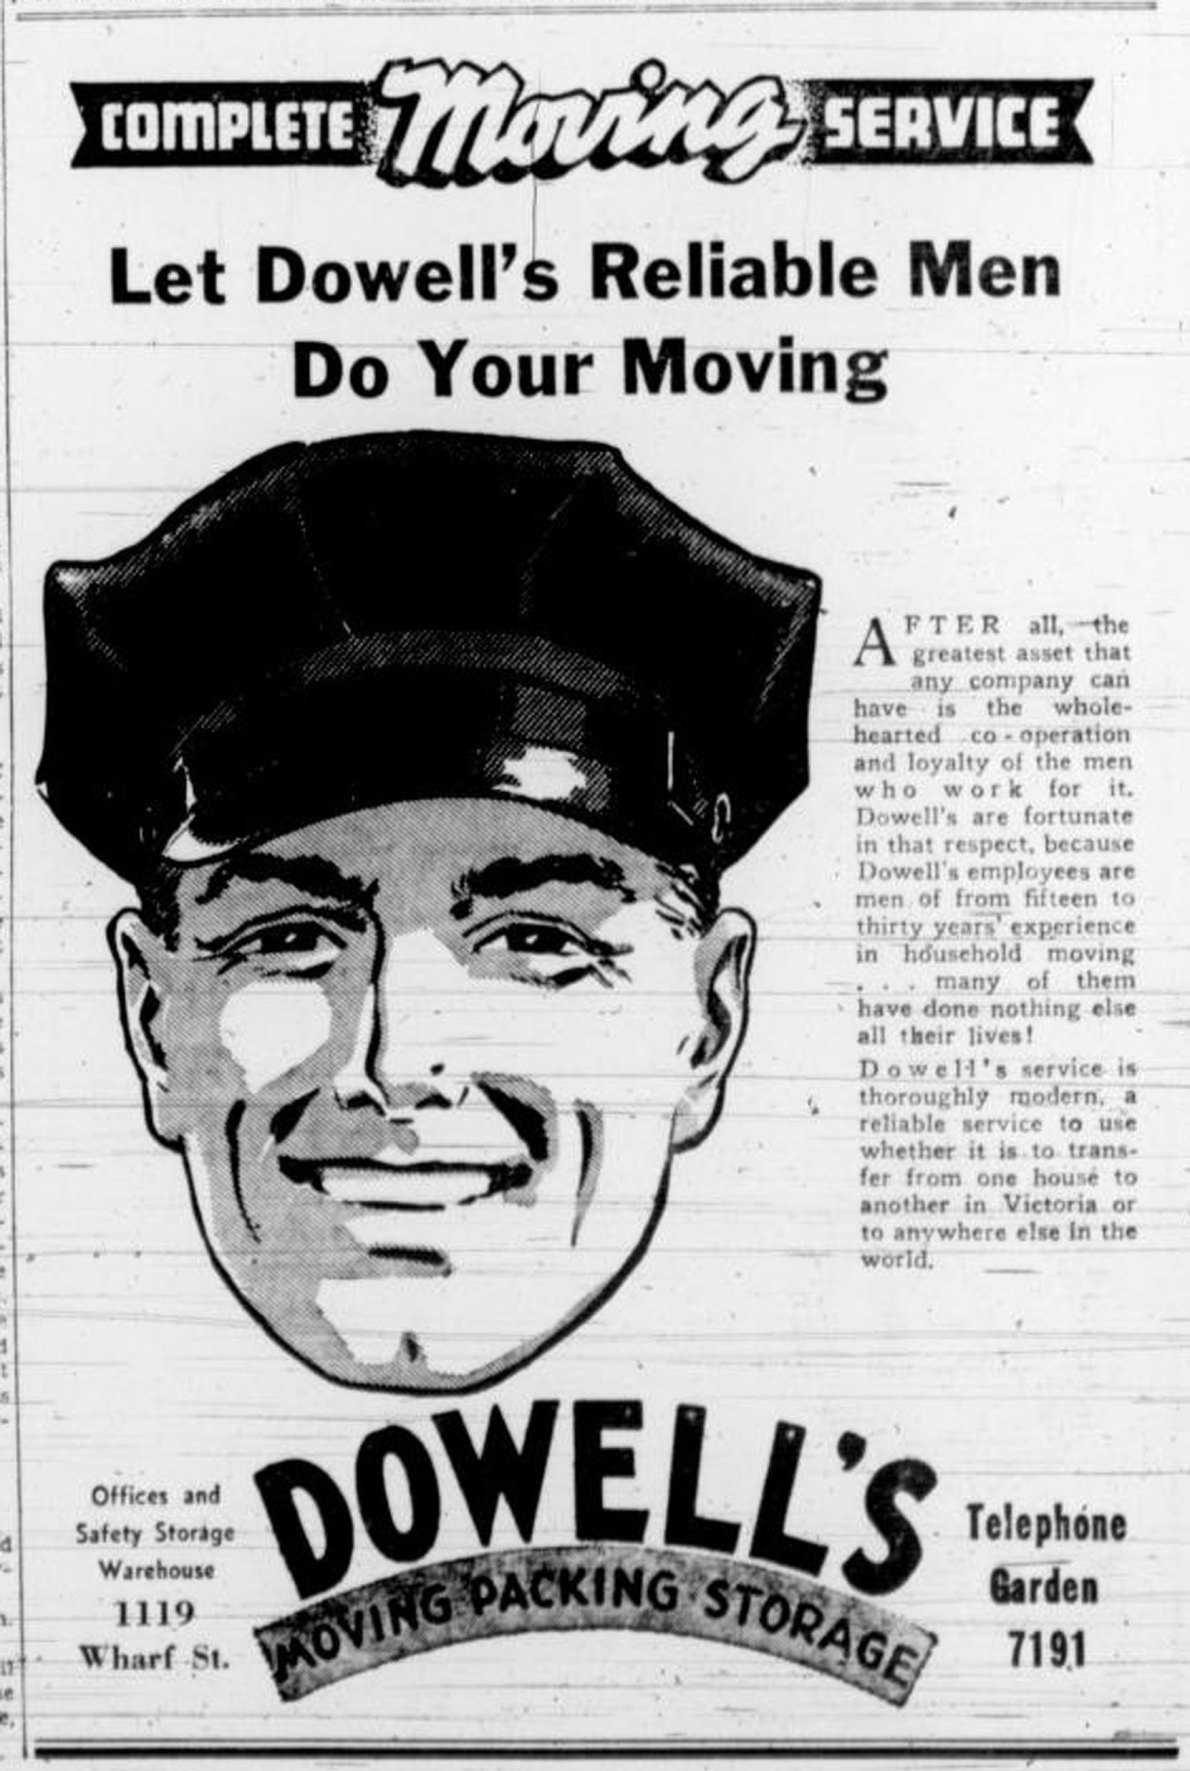 1938 advertisement for Dowell's Moving, then located in the Rithet Building at 1117 Wharf Street.